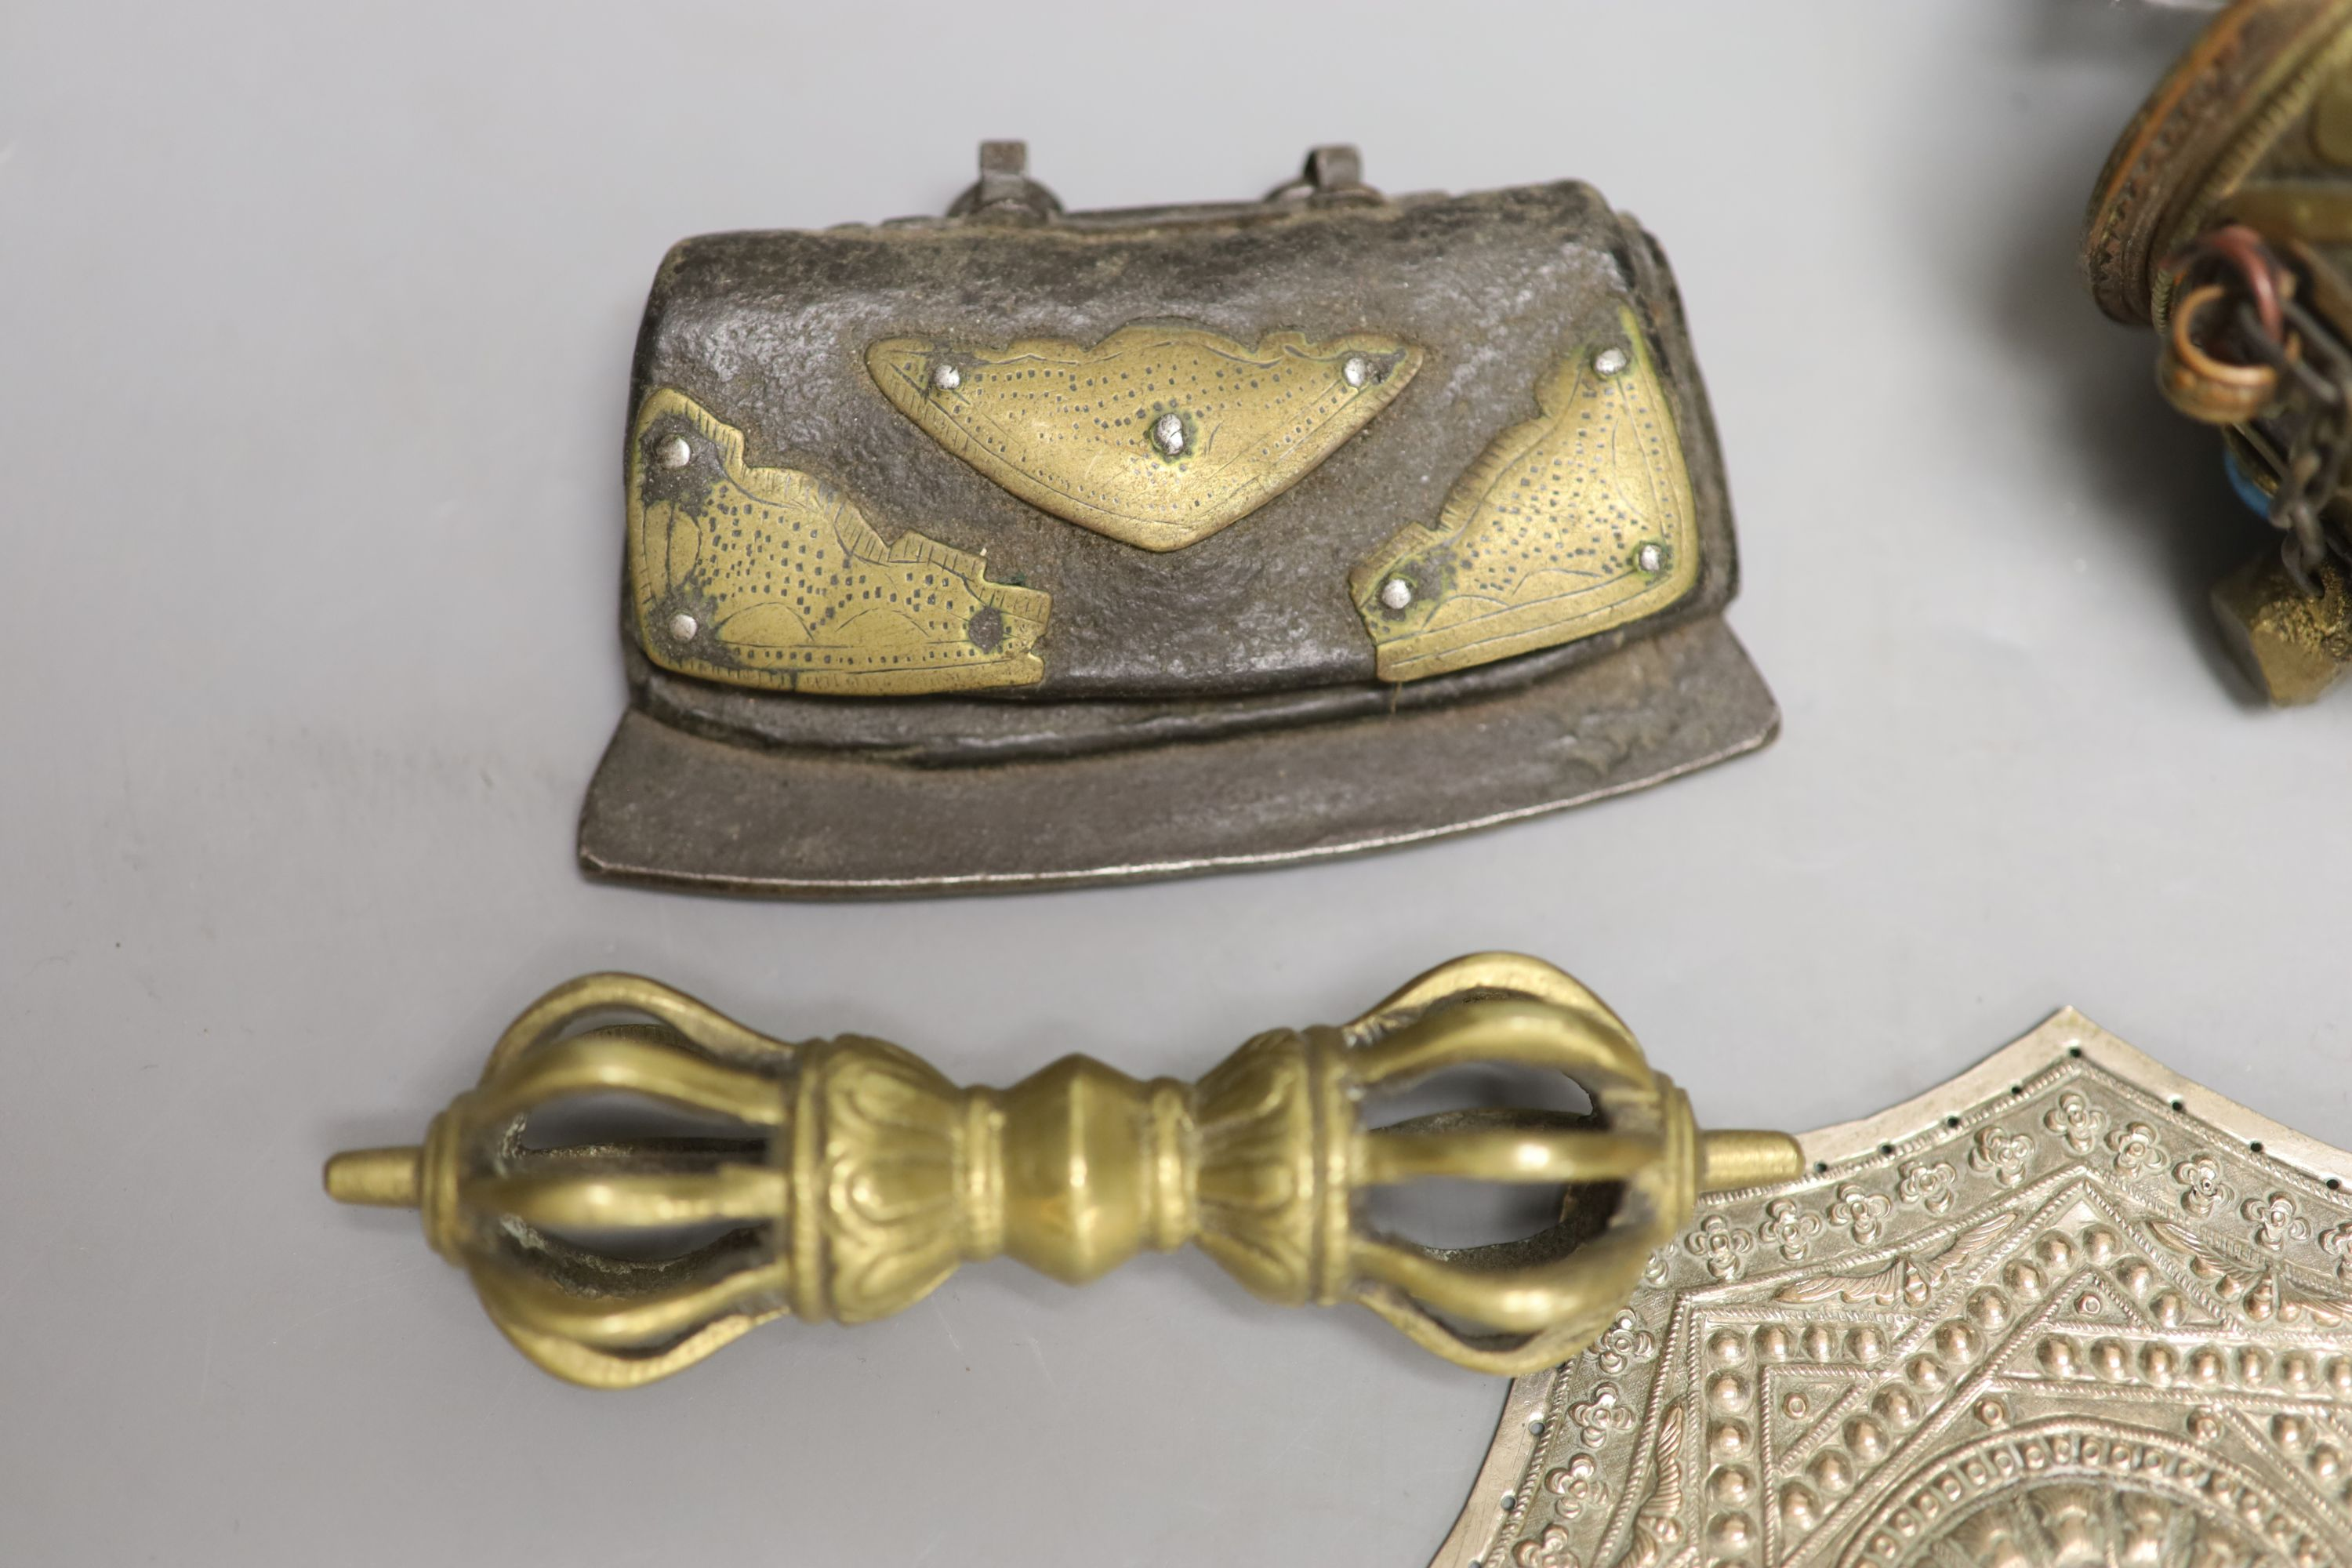 A Tibetan brass prayer wheel, inset with cabochons, with turned wood handle and four other items, - Image 4 of 4